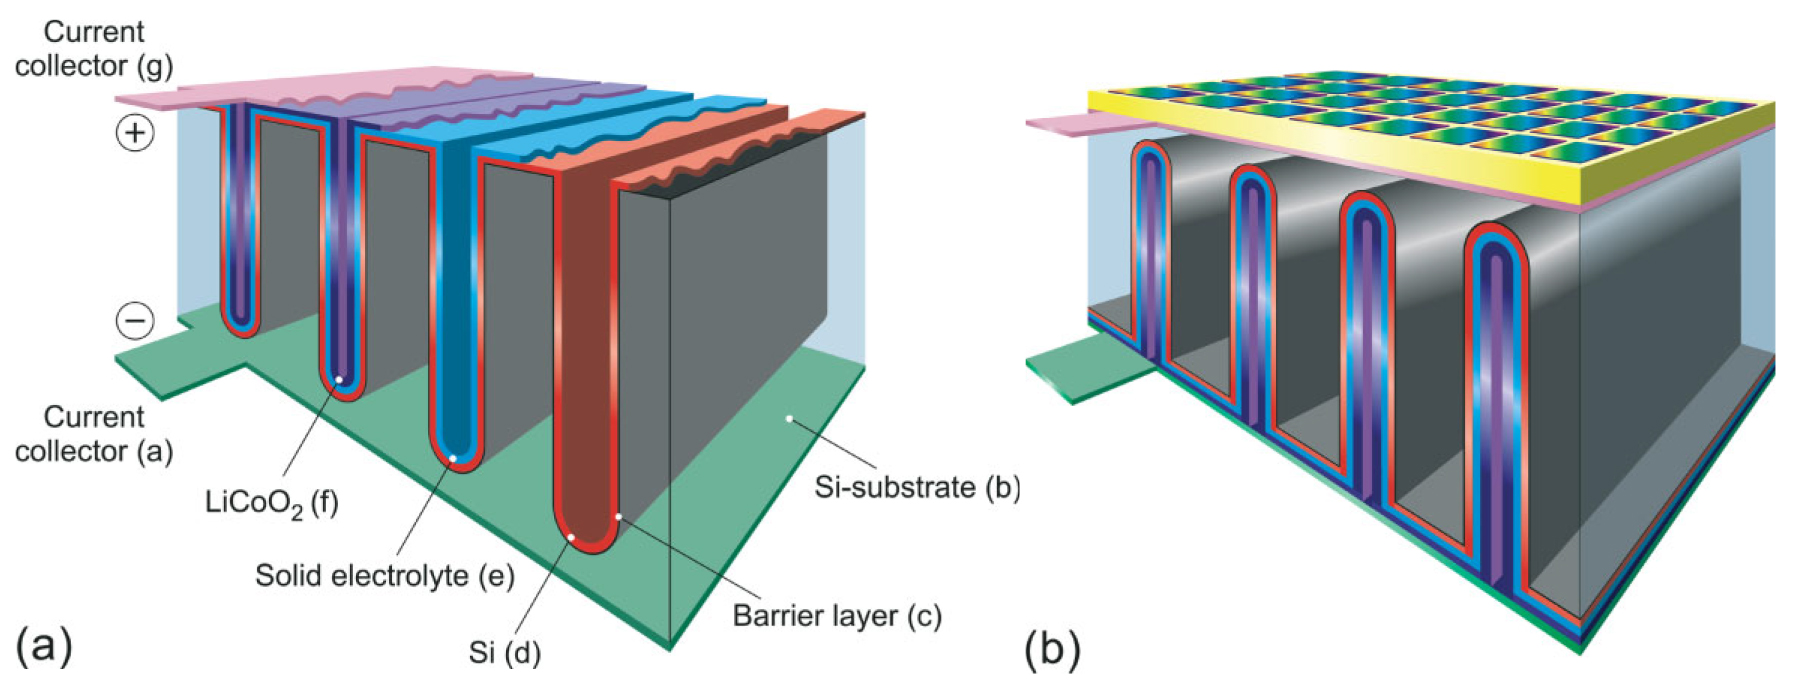 A diagram of a 3D all-solid-state lithium-ion battery, from one of Notten's research papers.